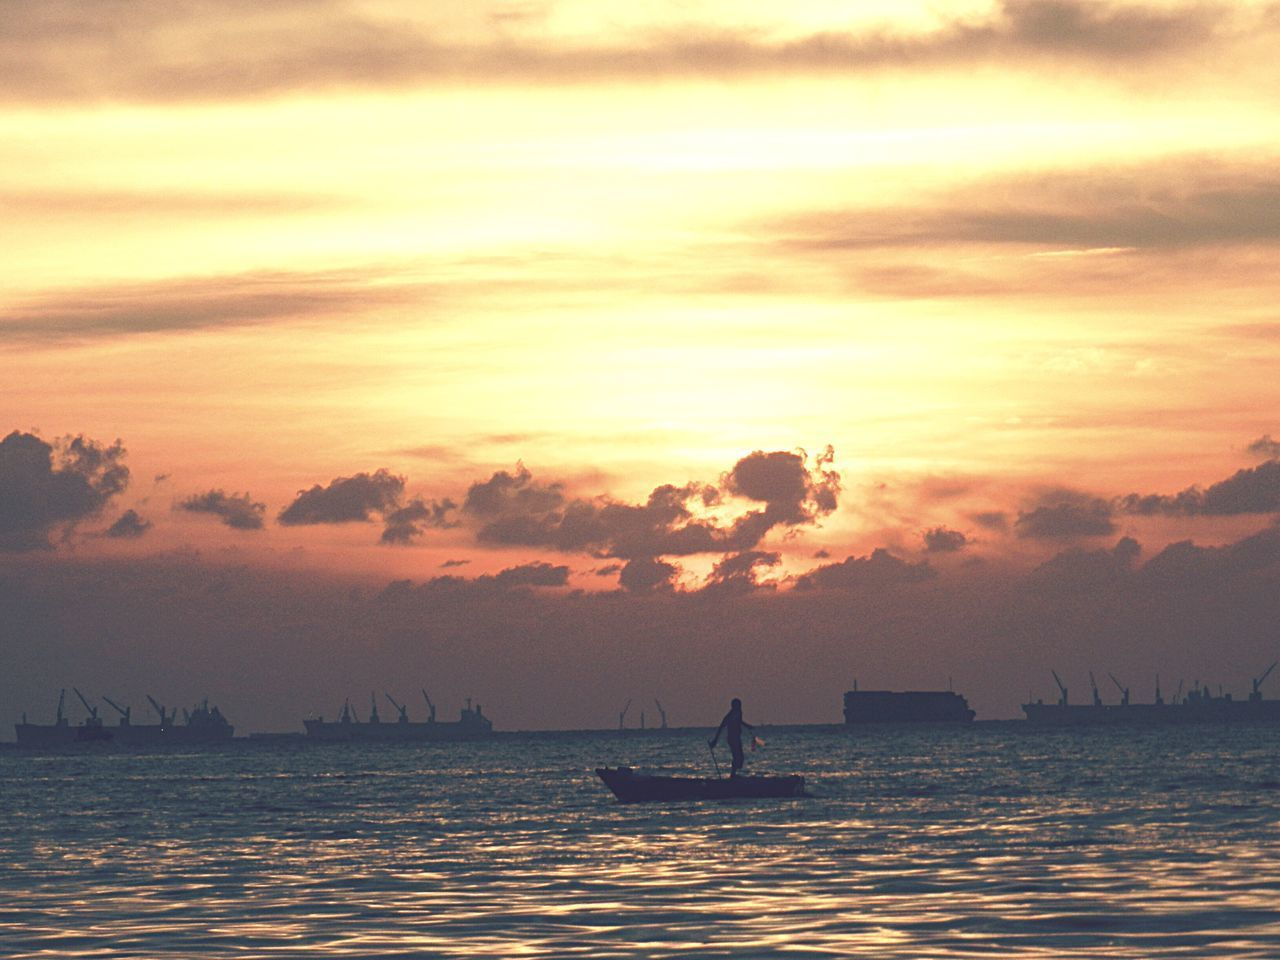 sunset, nautical vessel, transportation, water, mode of transport, beauty in nature, scenics, silhouette, nature, boat, sky, orange color, sea, tranquil scene, tranquility, cloud - sky, outdoors, real people, waterfront, sailing, men, longtail boat, horizon over water, rowing, oar, one person, jet boat, day, people